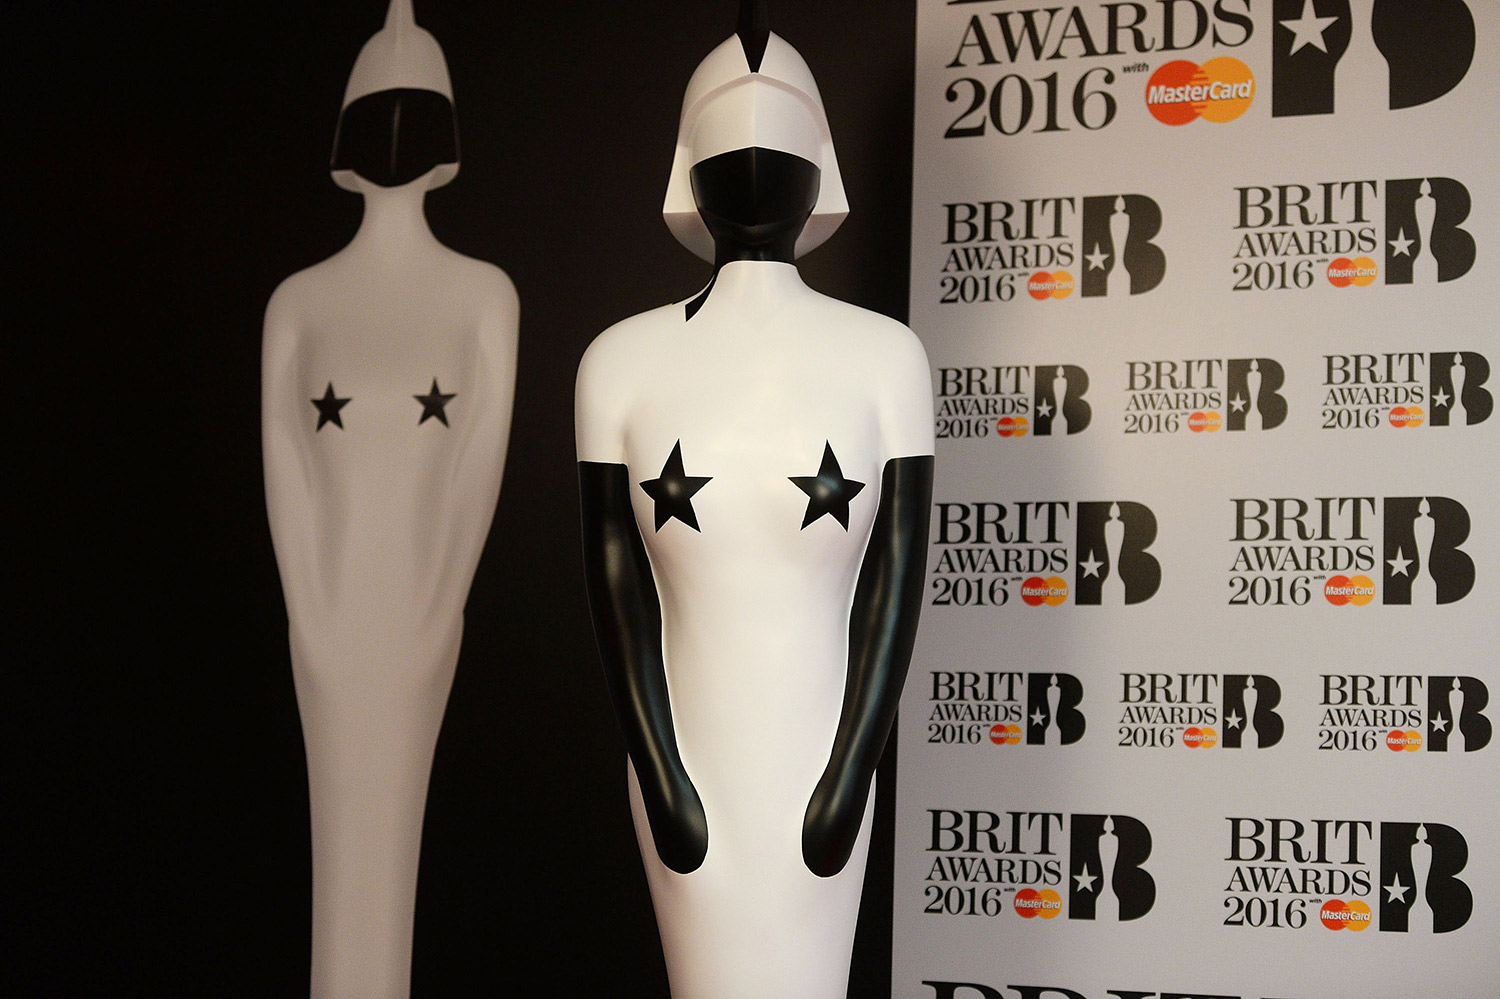 Multishow-BRIT Awards 2016